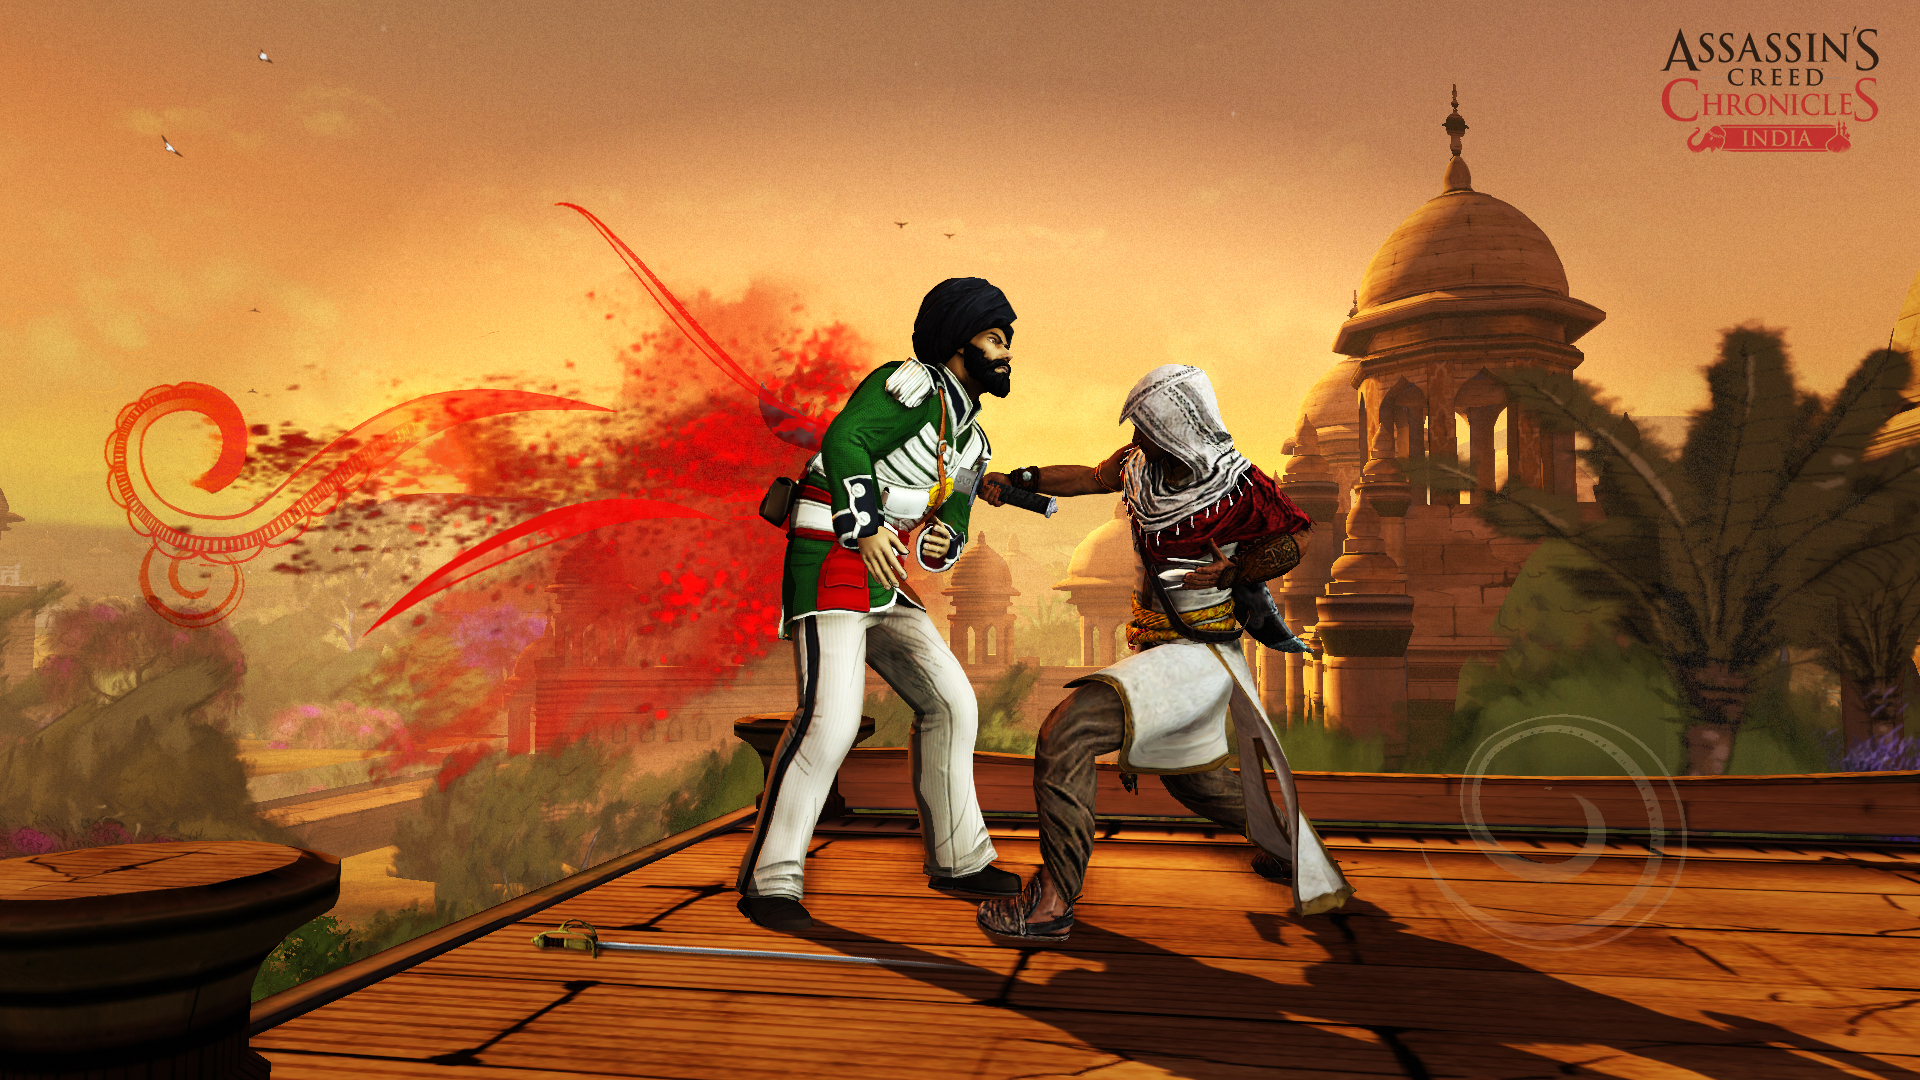 ACC_INDIA_screen_Combat_2_wm